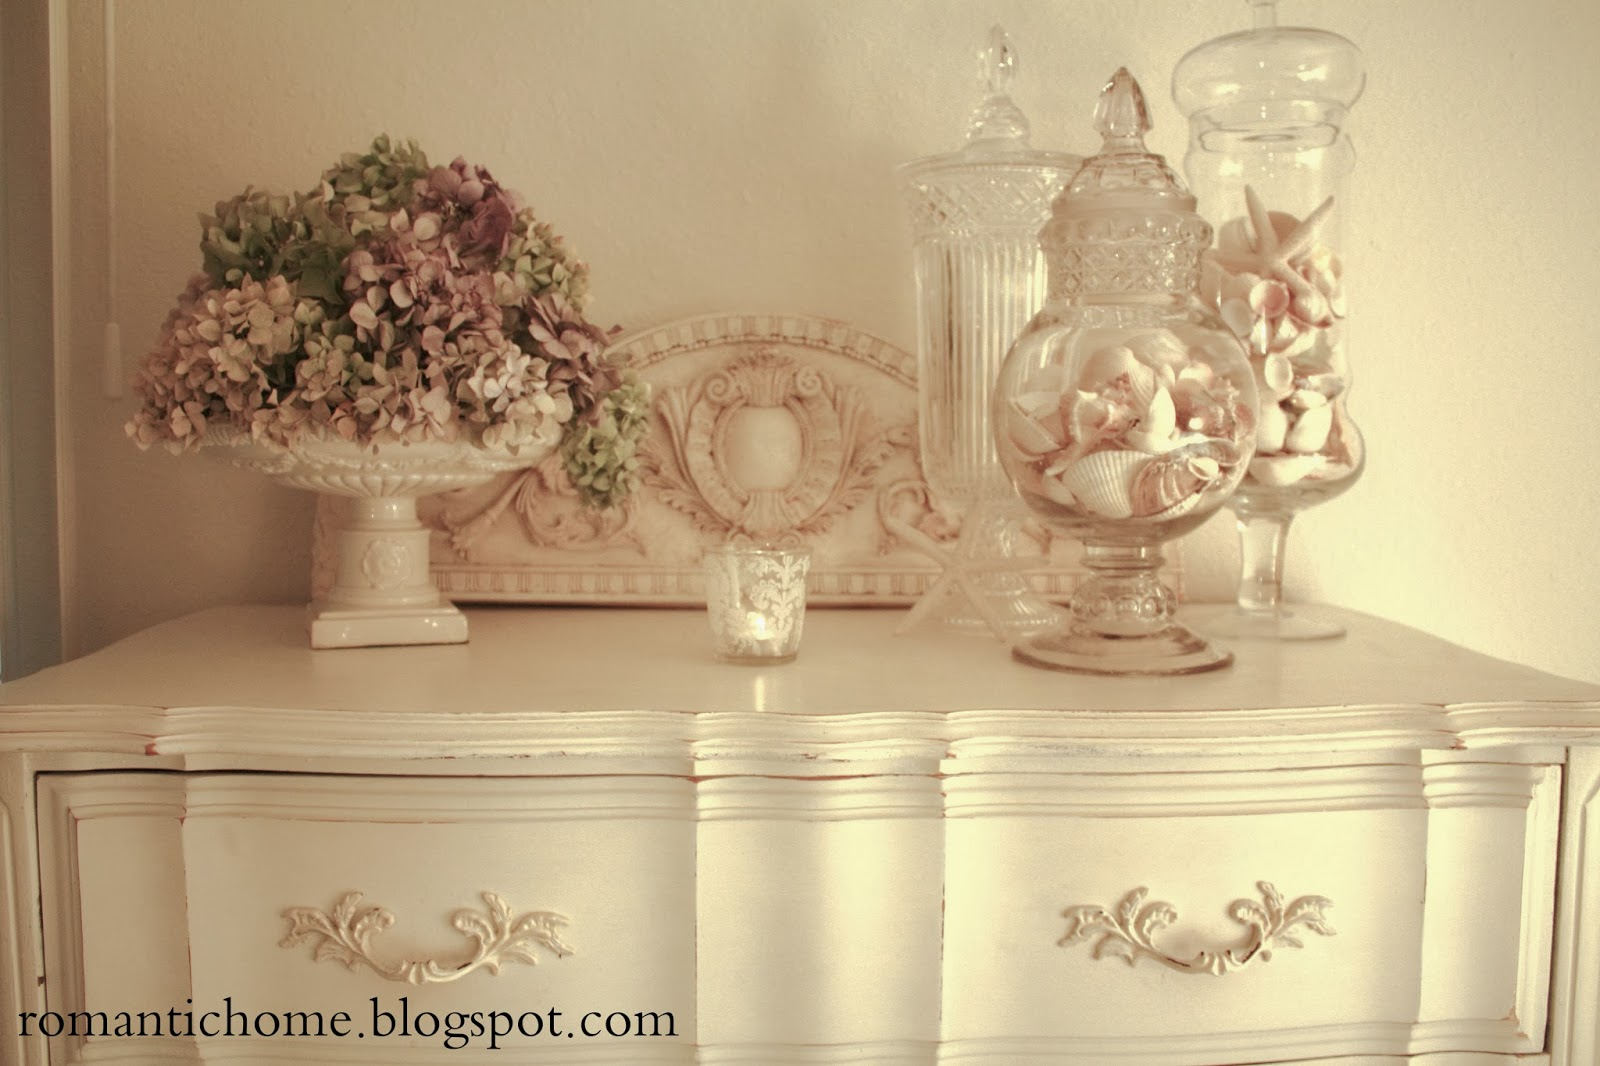 my romantic home: still unpacking - show and tell friday